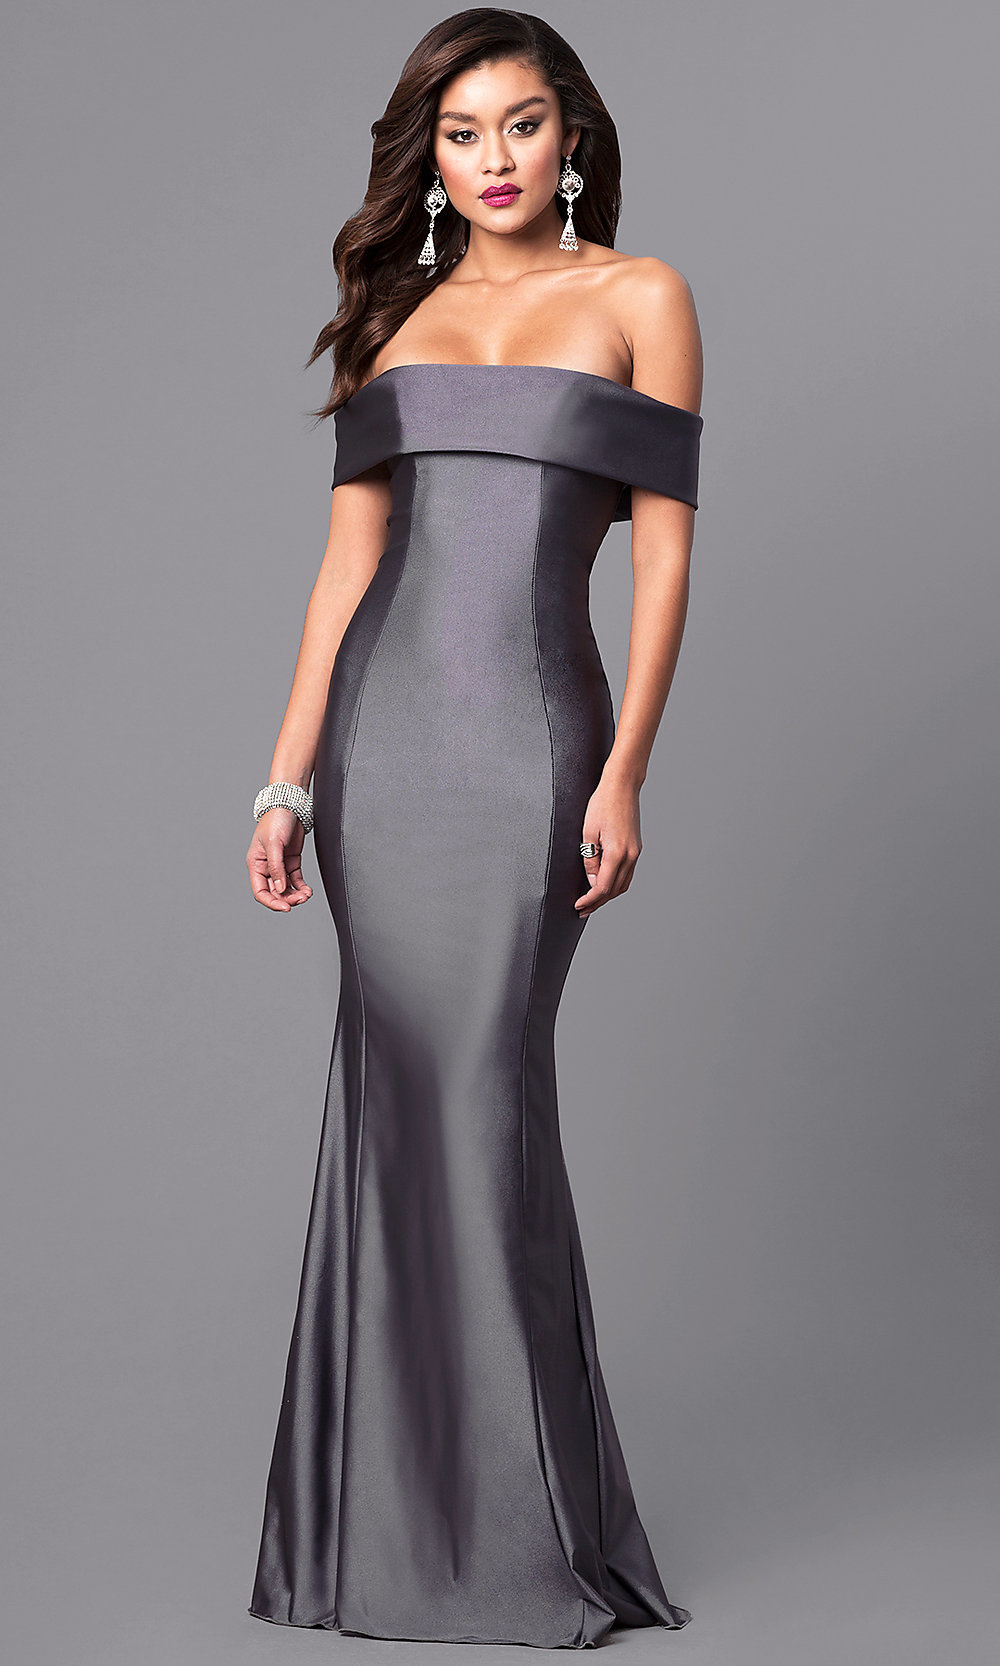 bea69d9065 Long Off-the-Shoulder Atria Prom Dress with Train